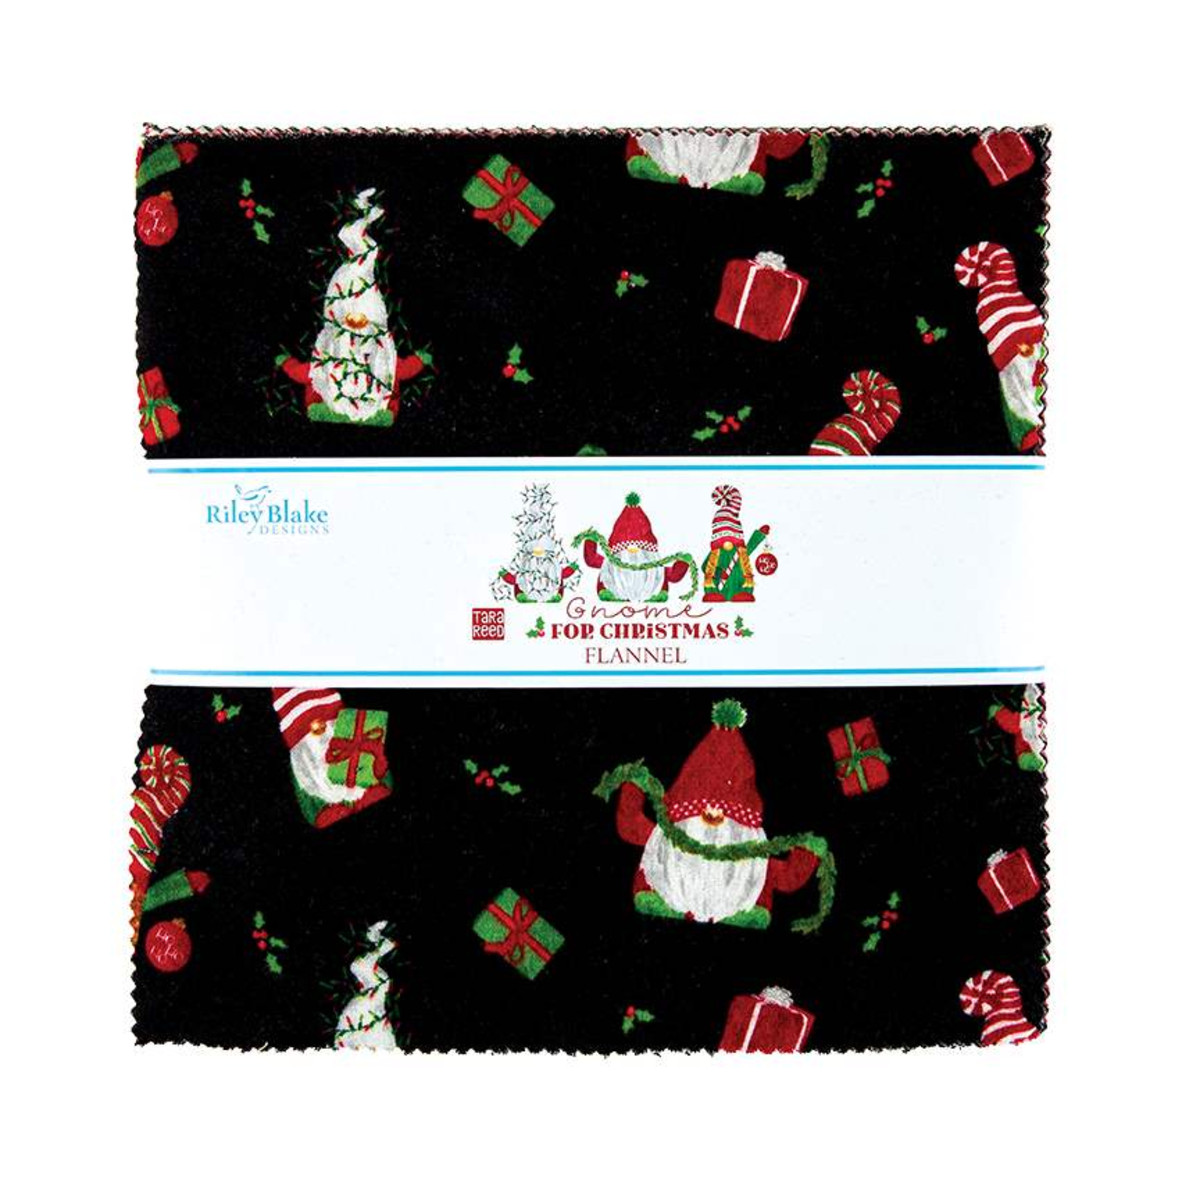 Riley Blake Layer Cake - Flannel Gnome for Christmas by Tara Reed